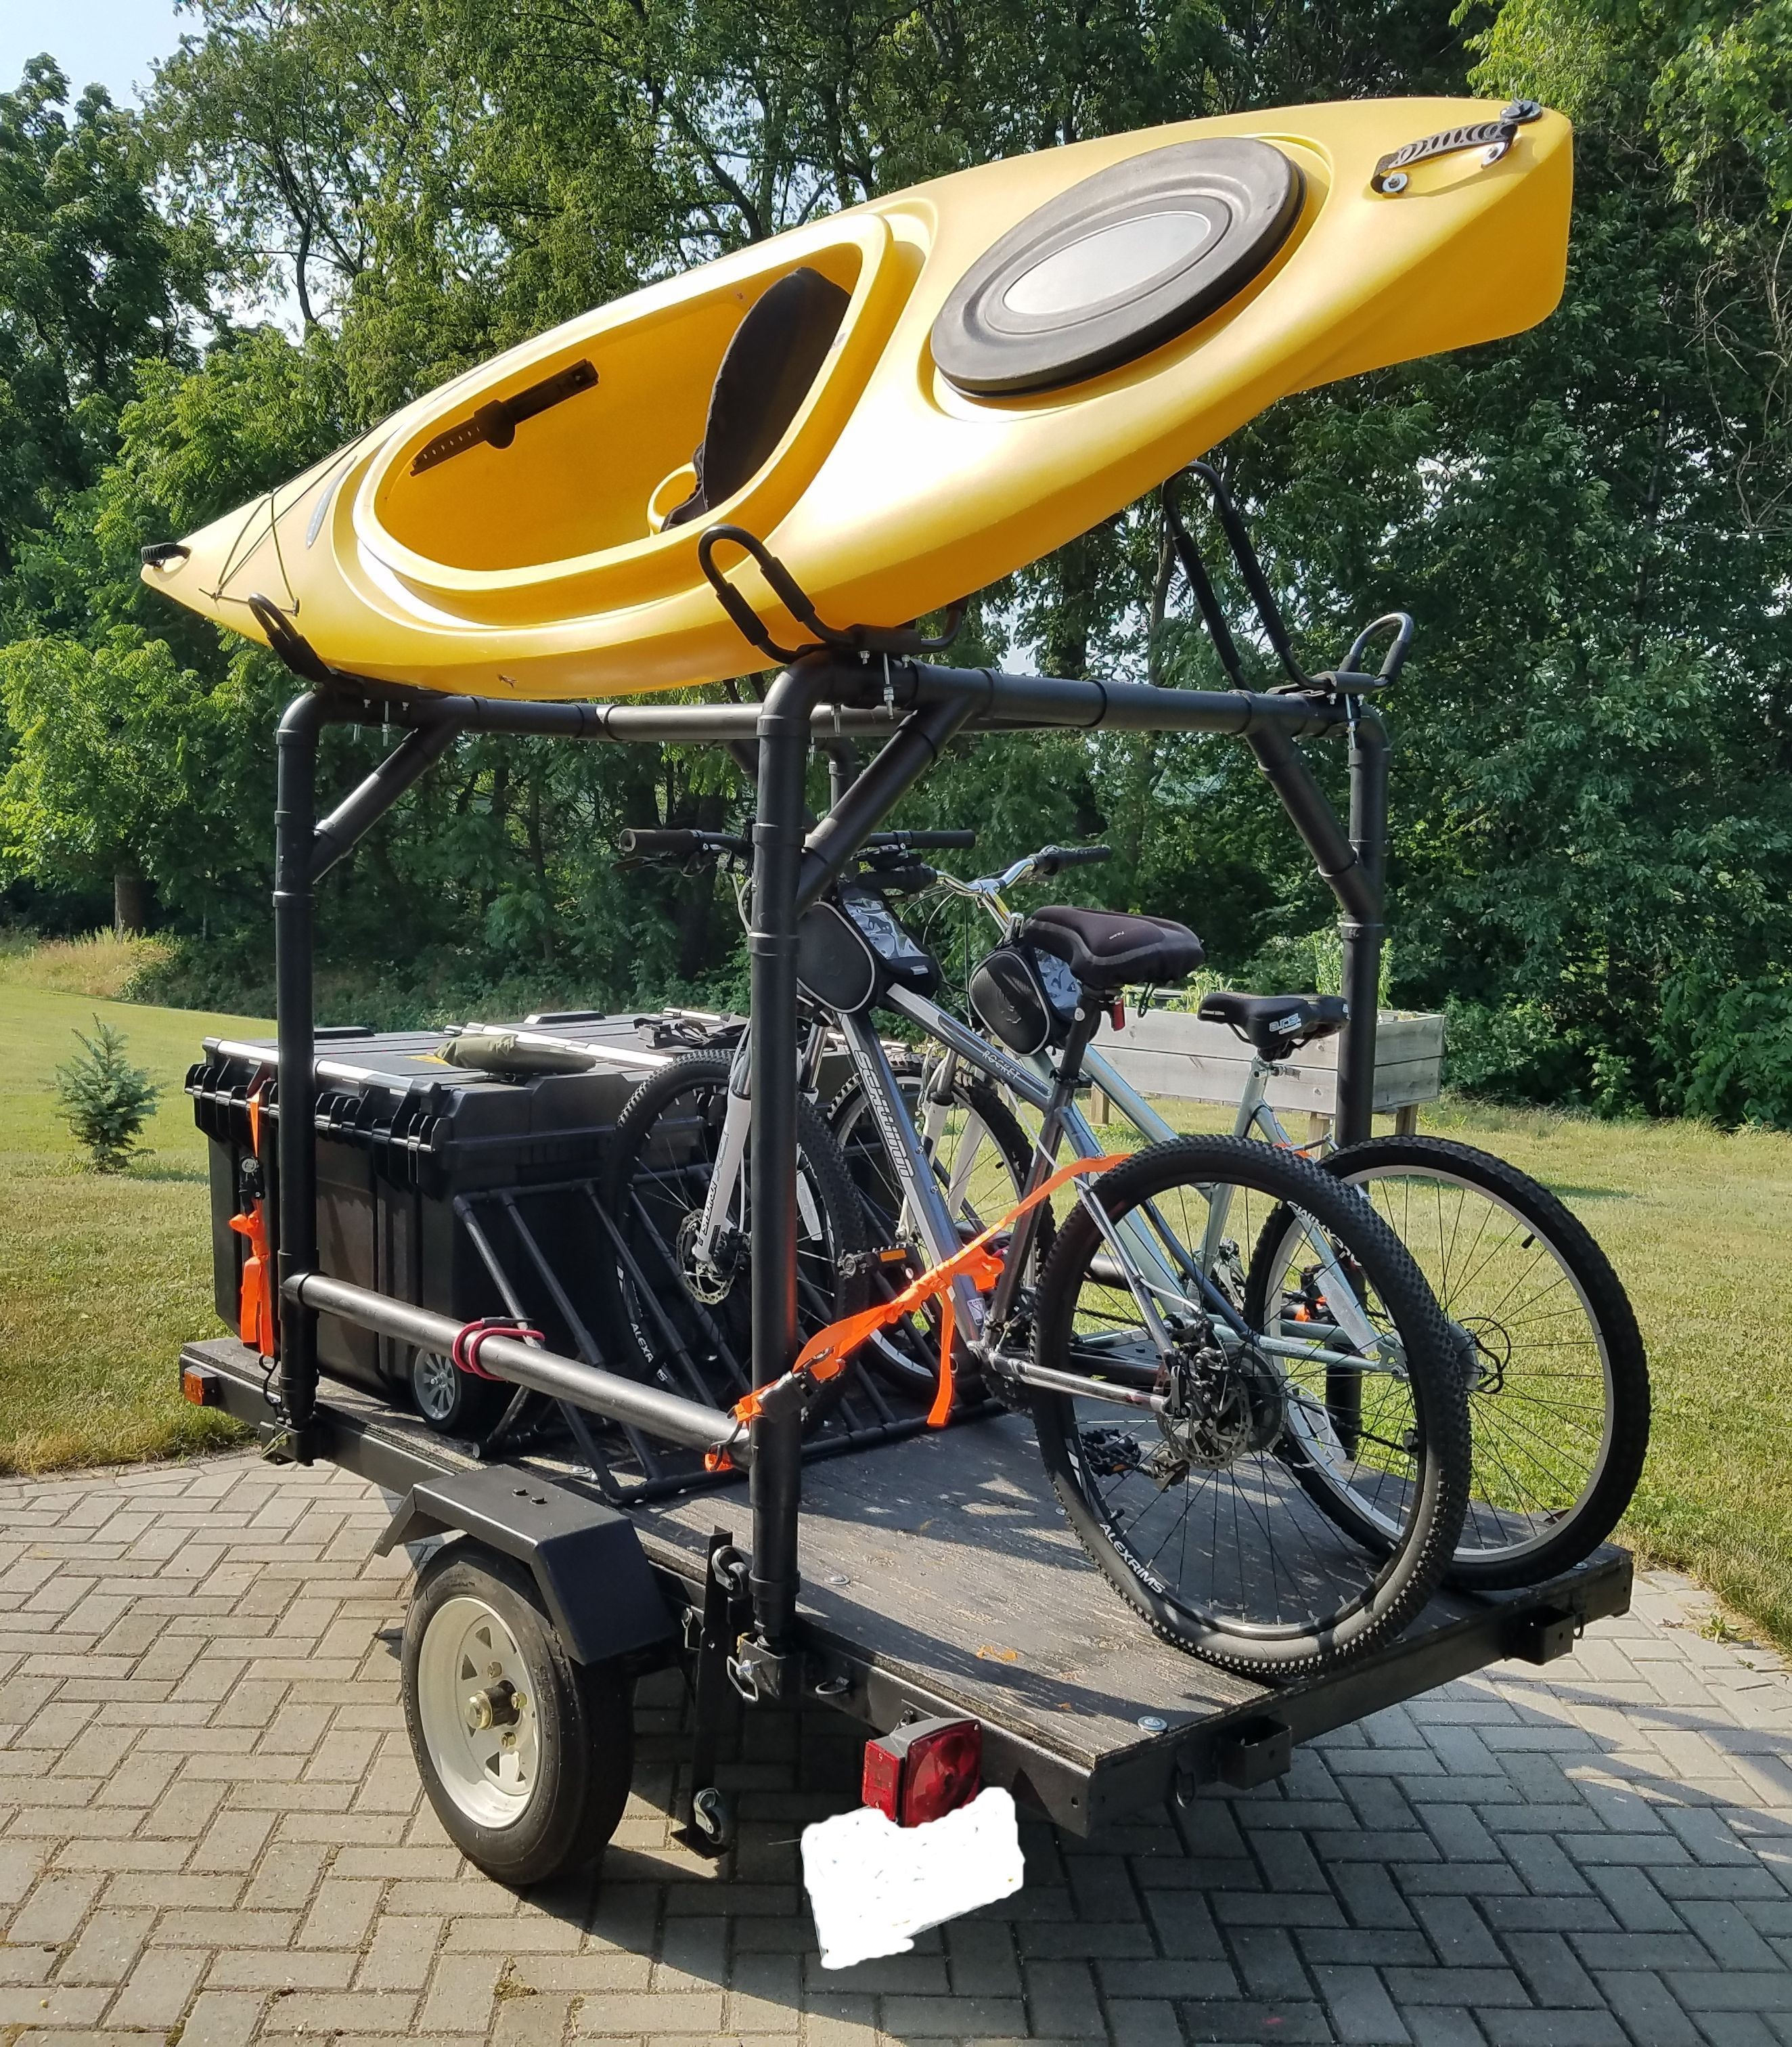 Harbor Freight Trailer MOD Kayak Camping and Bike Trailer KayakTrailer